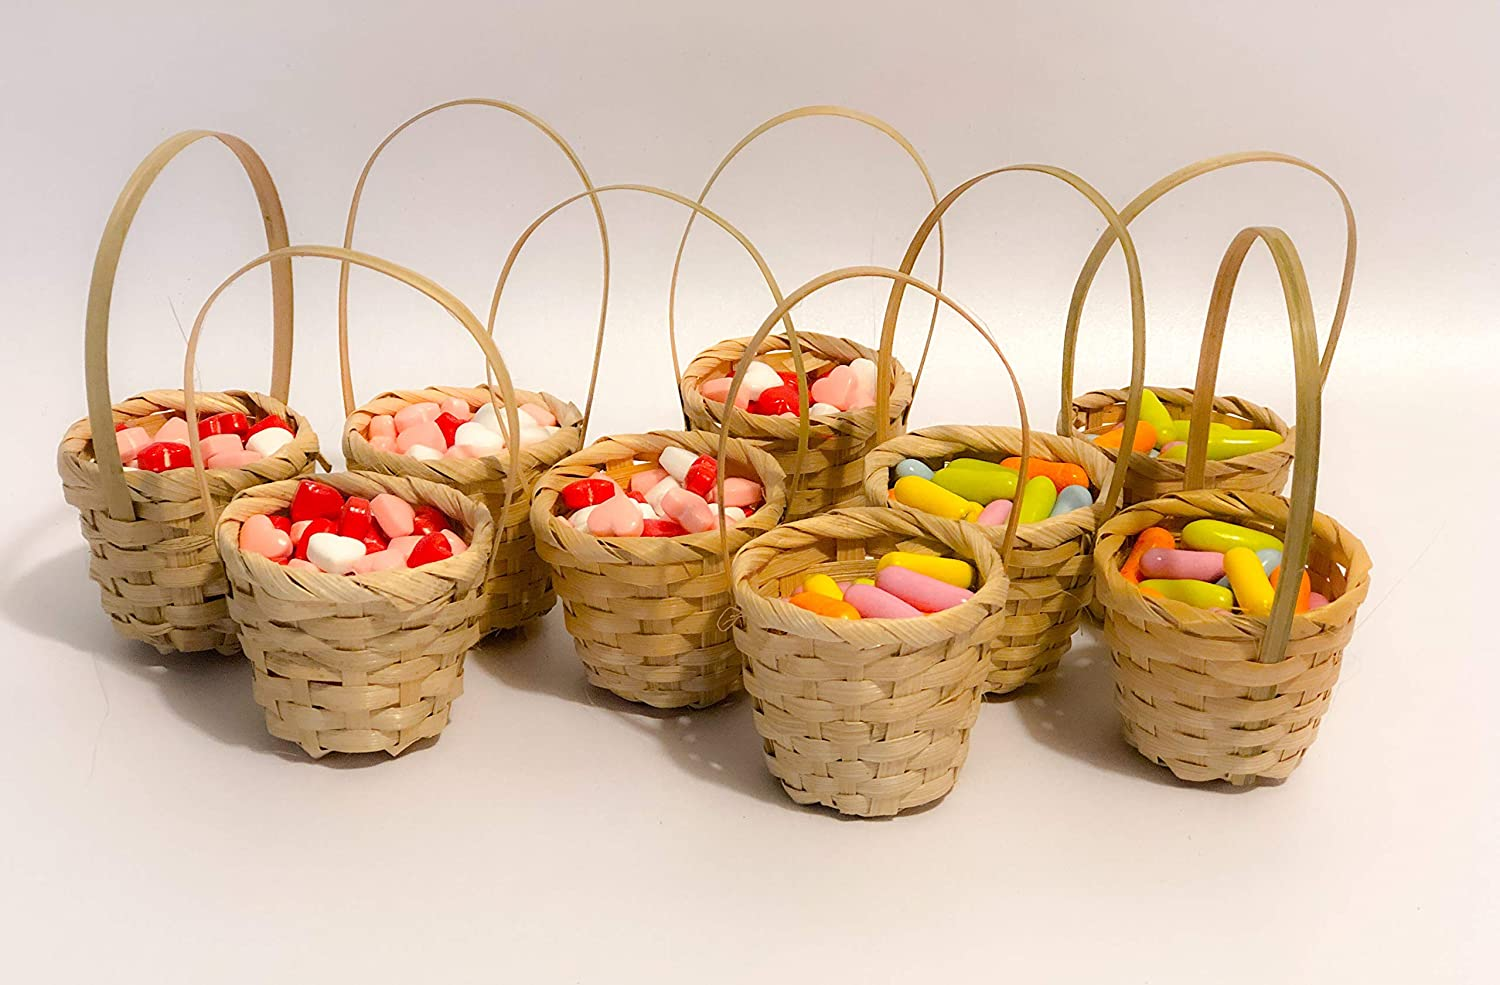 6pcs of Natural Miniature Straw Baskets, Mini Wicker Baskets, Small Rustic Baskets, Tiny Christmas and Easter Baskets, Wedding Baskets (Pack of 6)